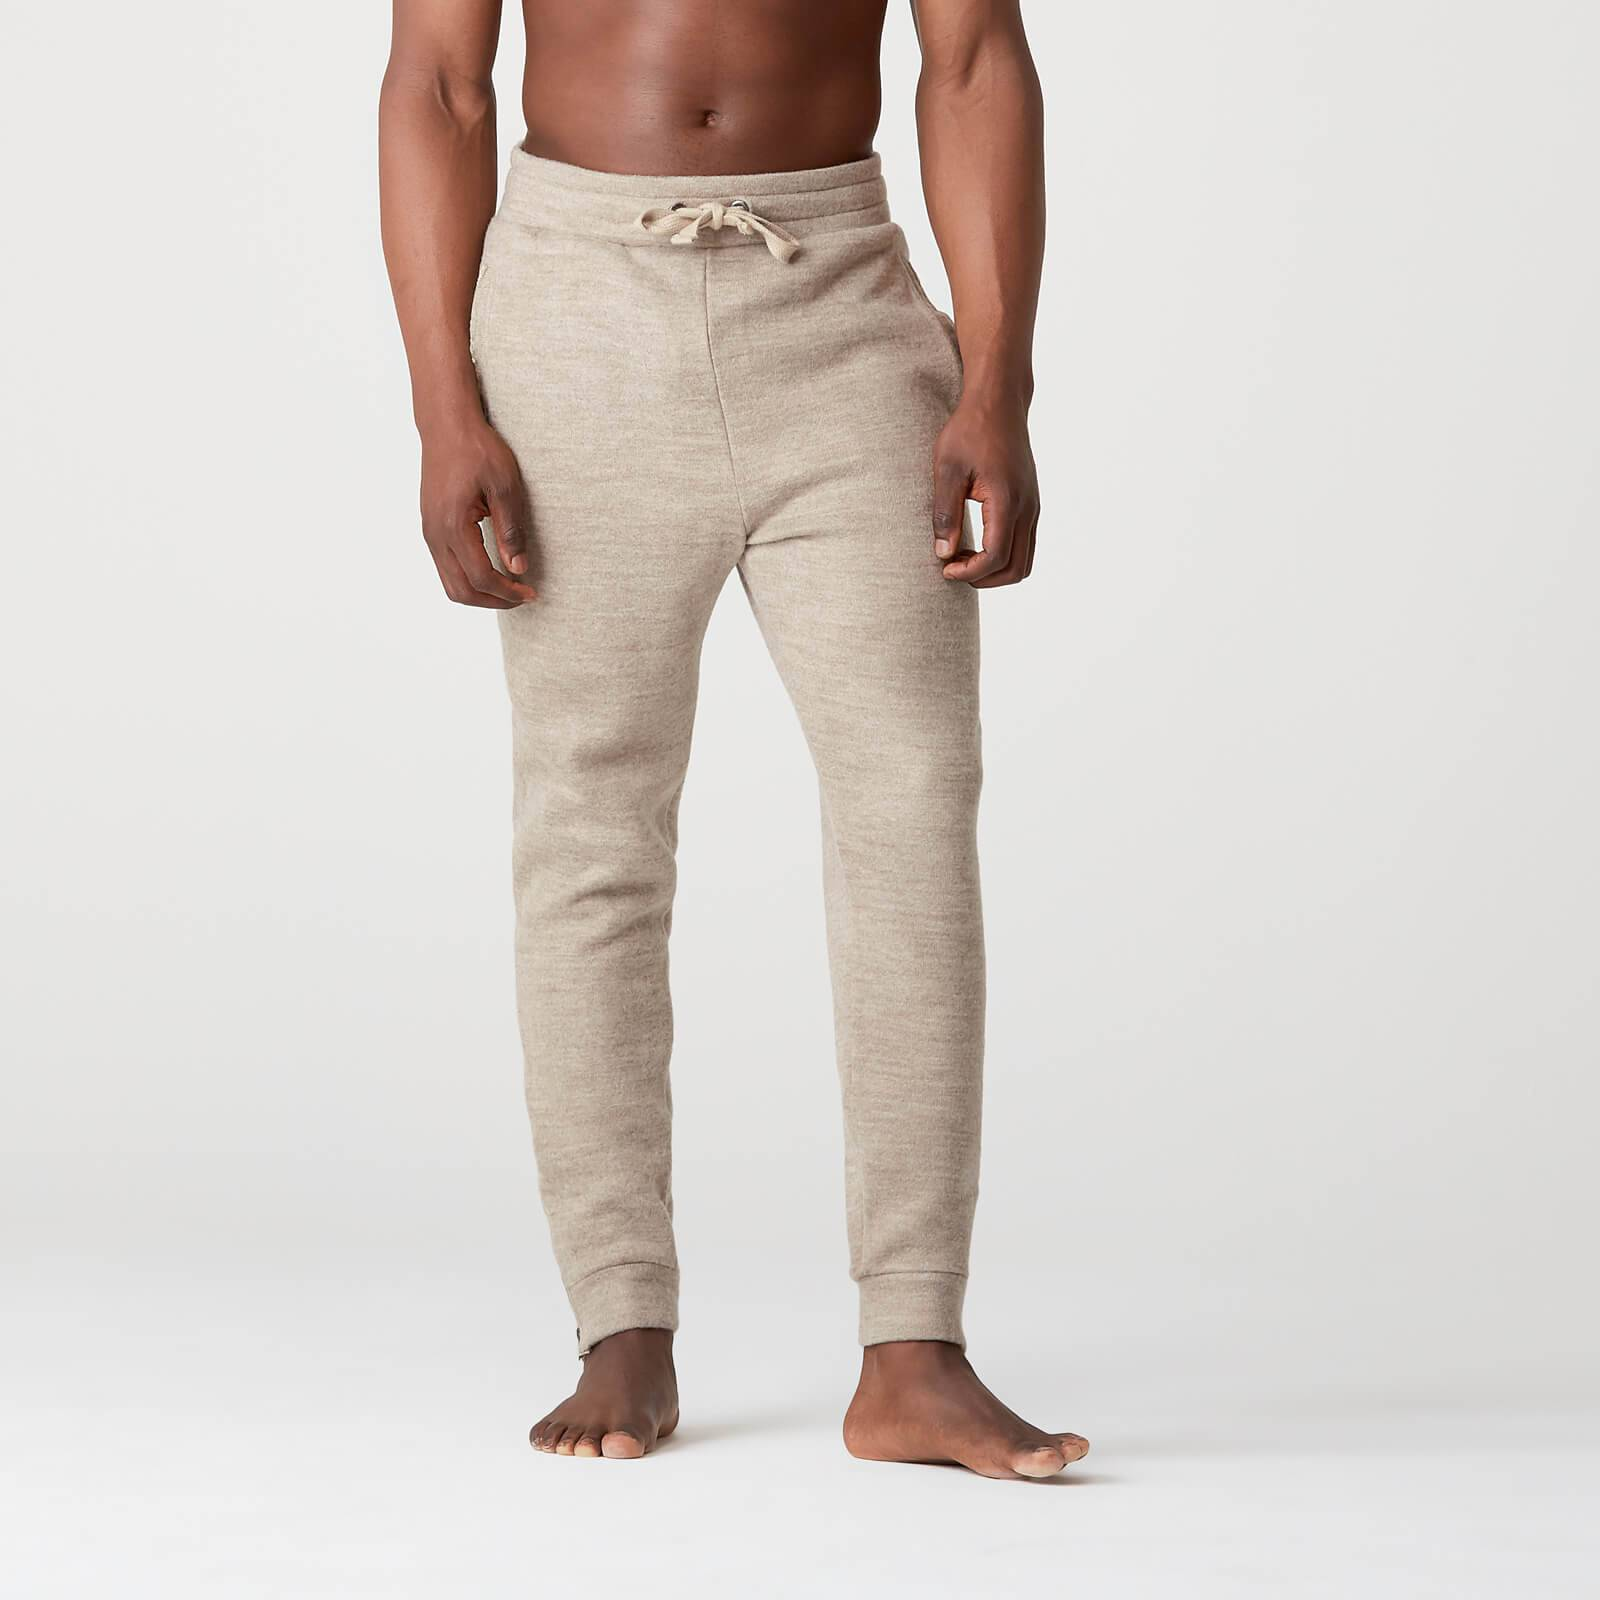 Myprotein Luxe Leisure Joggers - Taupe - XXL